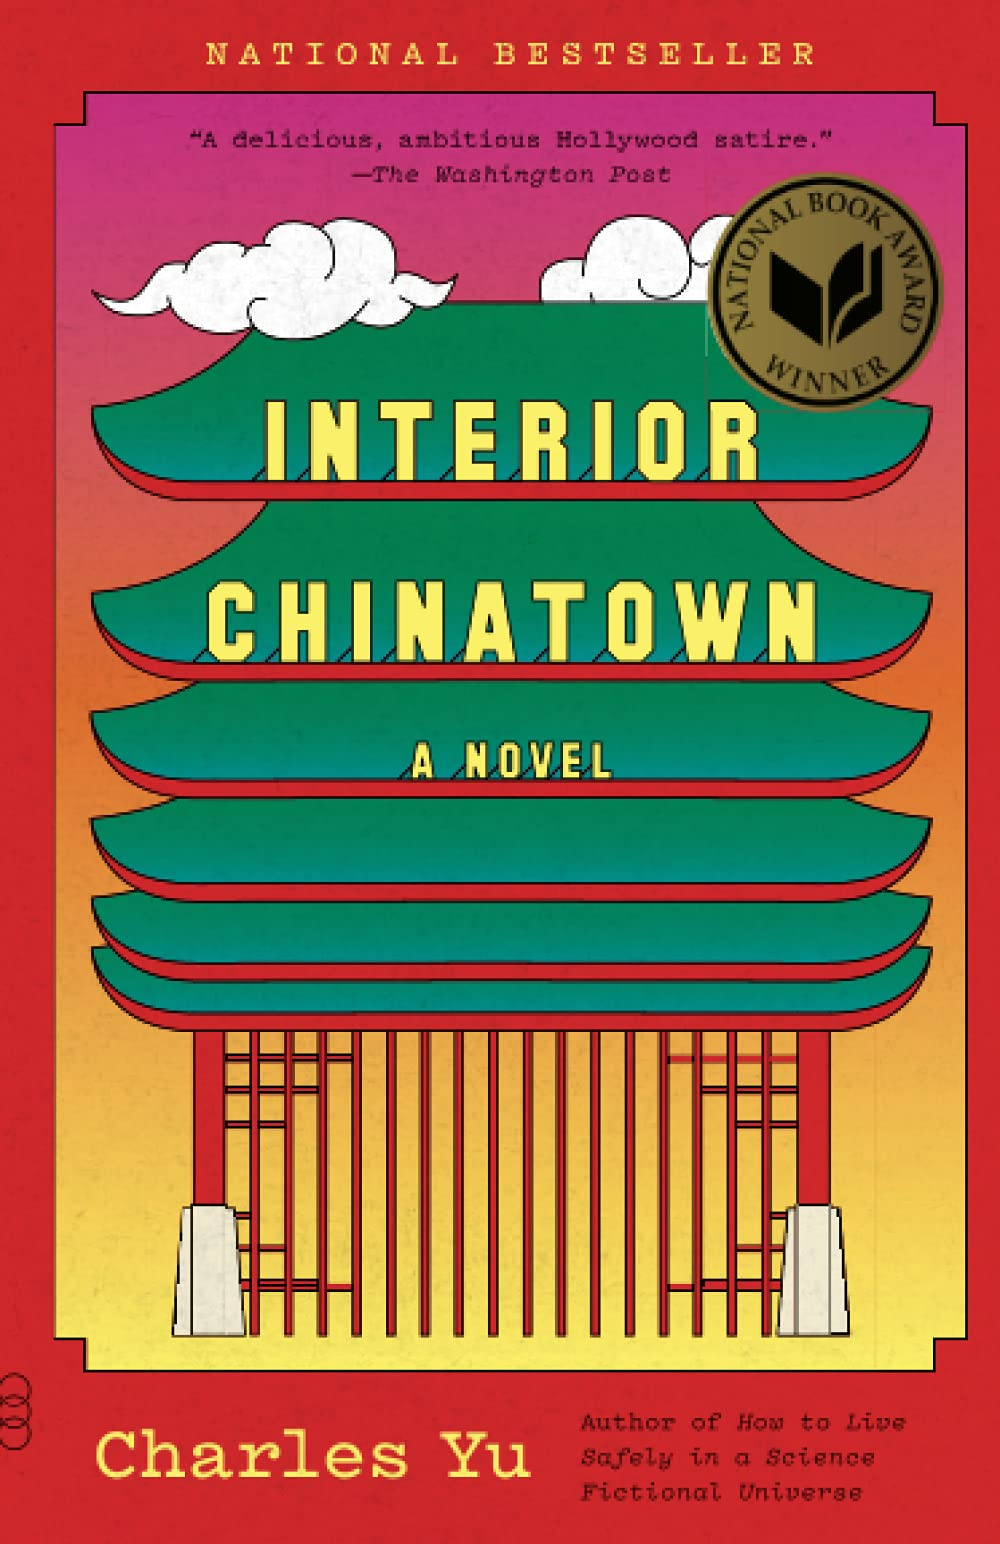 Book cover of Interior Chinatown by Charles Yu.